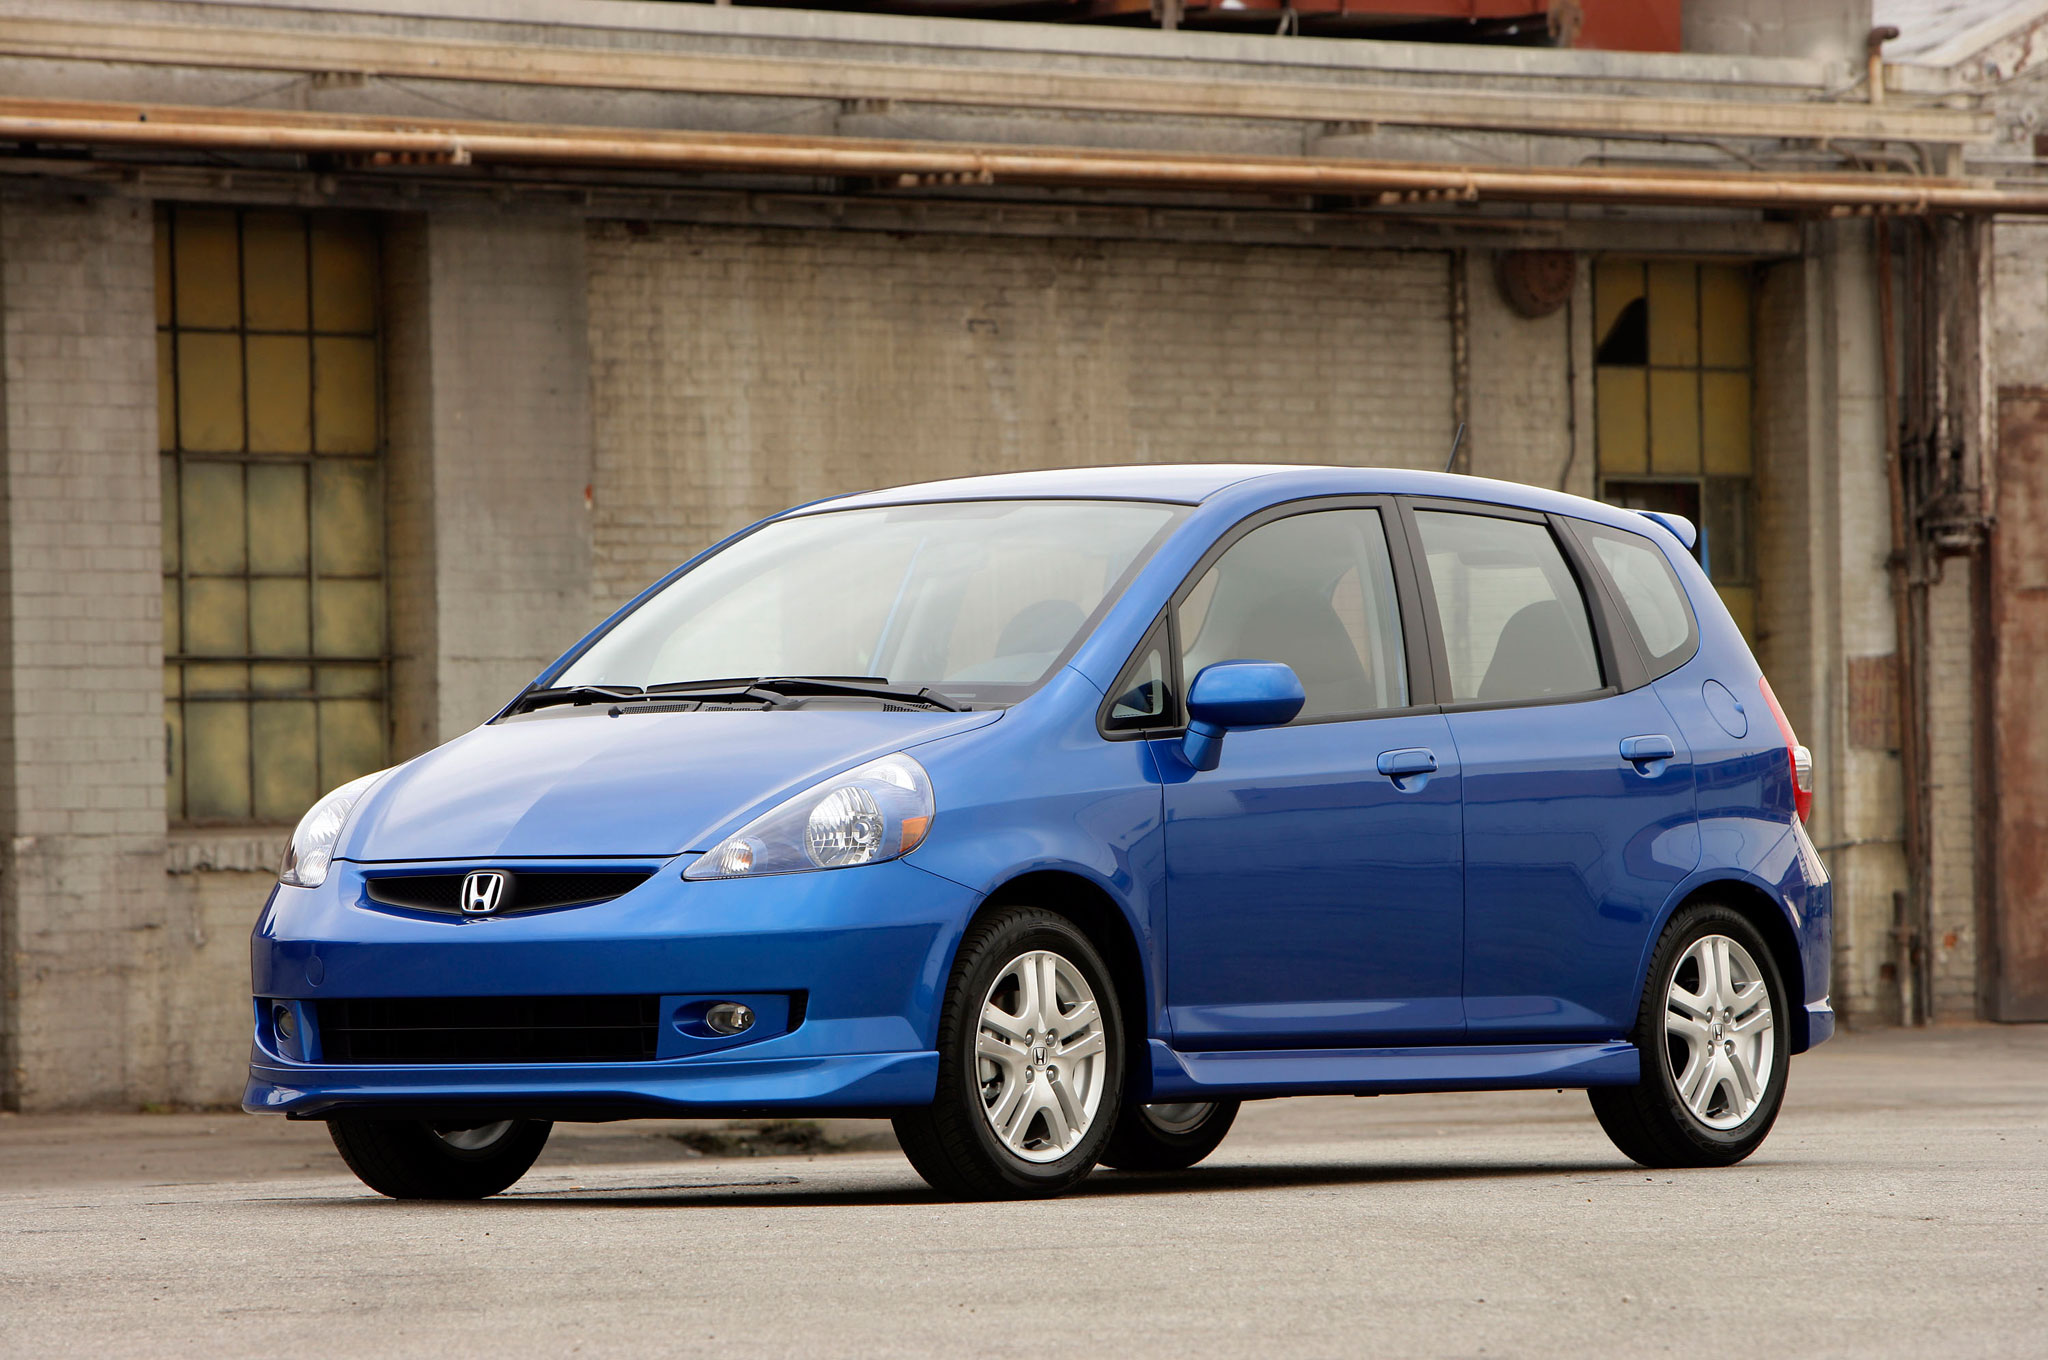 2007 2008 Honda Fit Recalled Second Time For Window Switch Fire Hazard